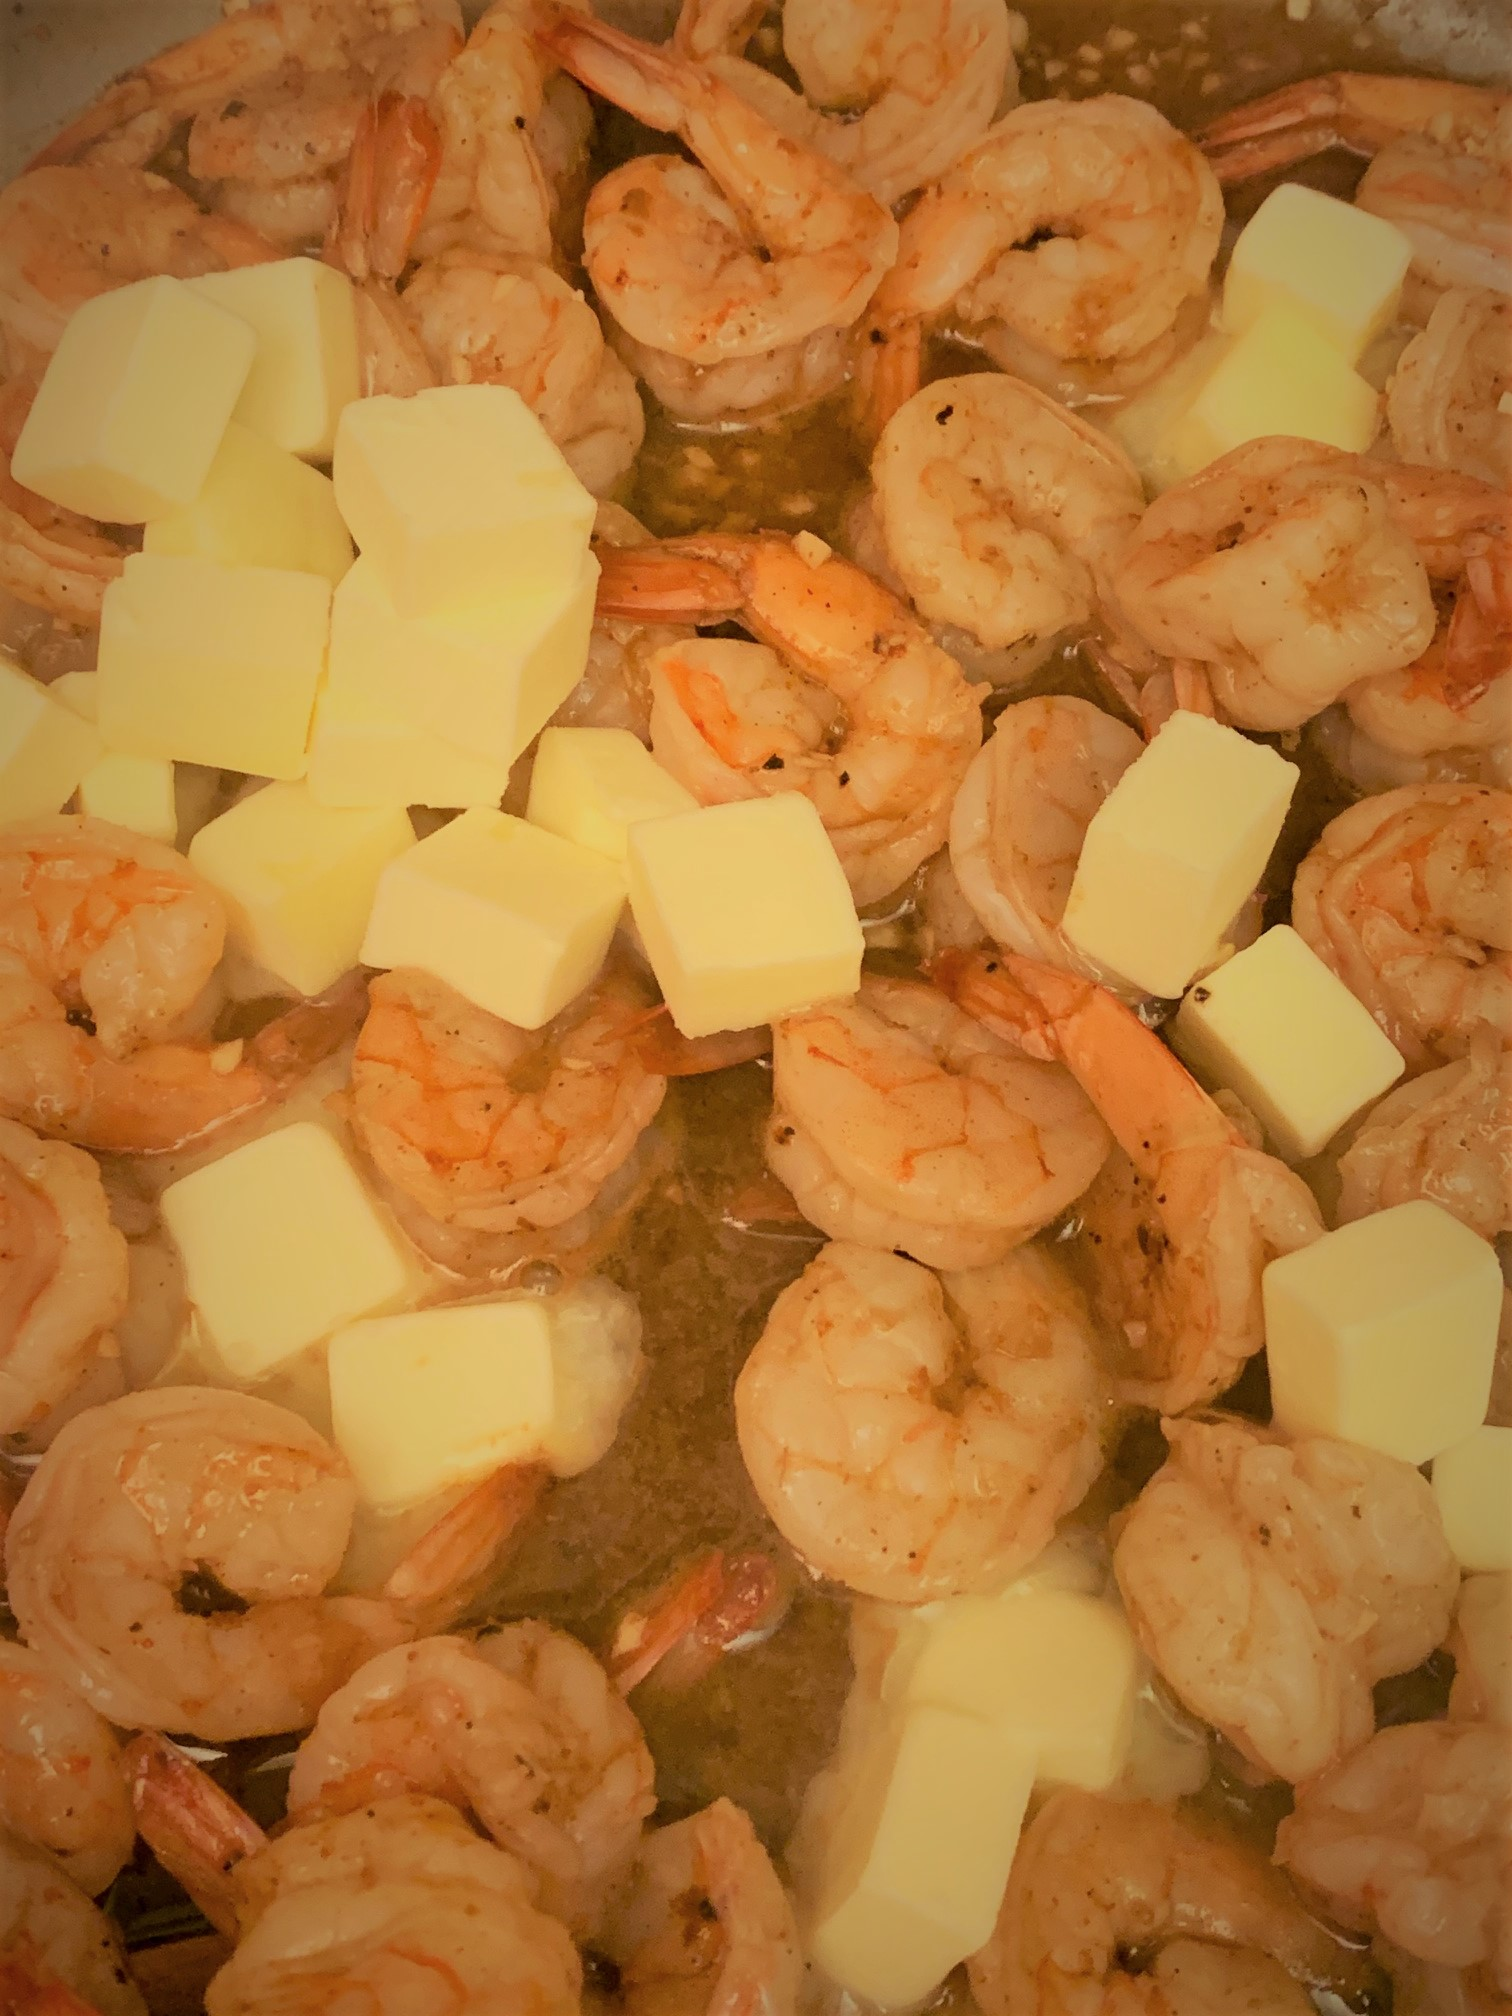 Butter added to the Shrimp